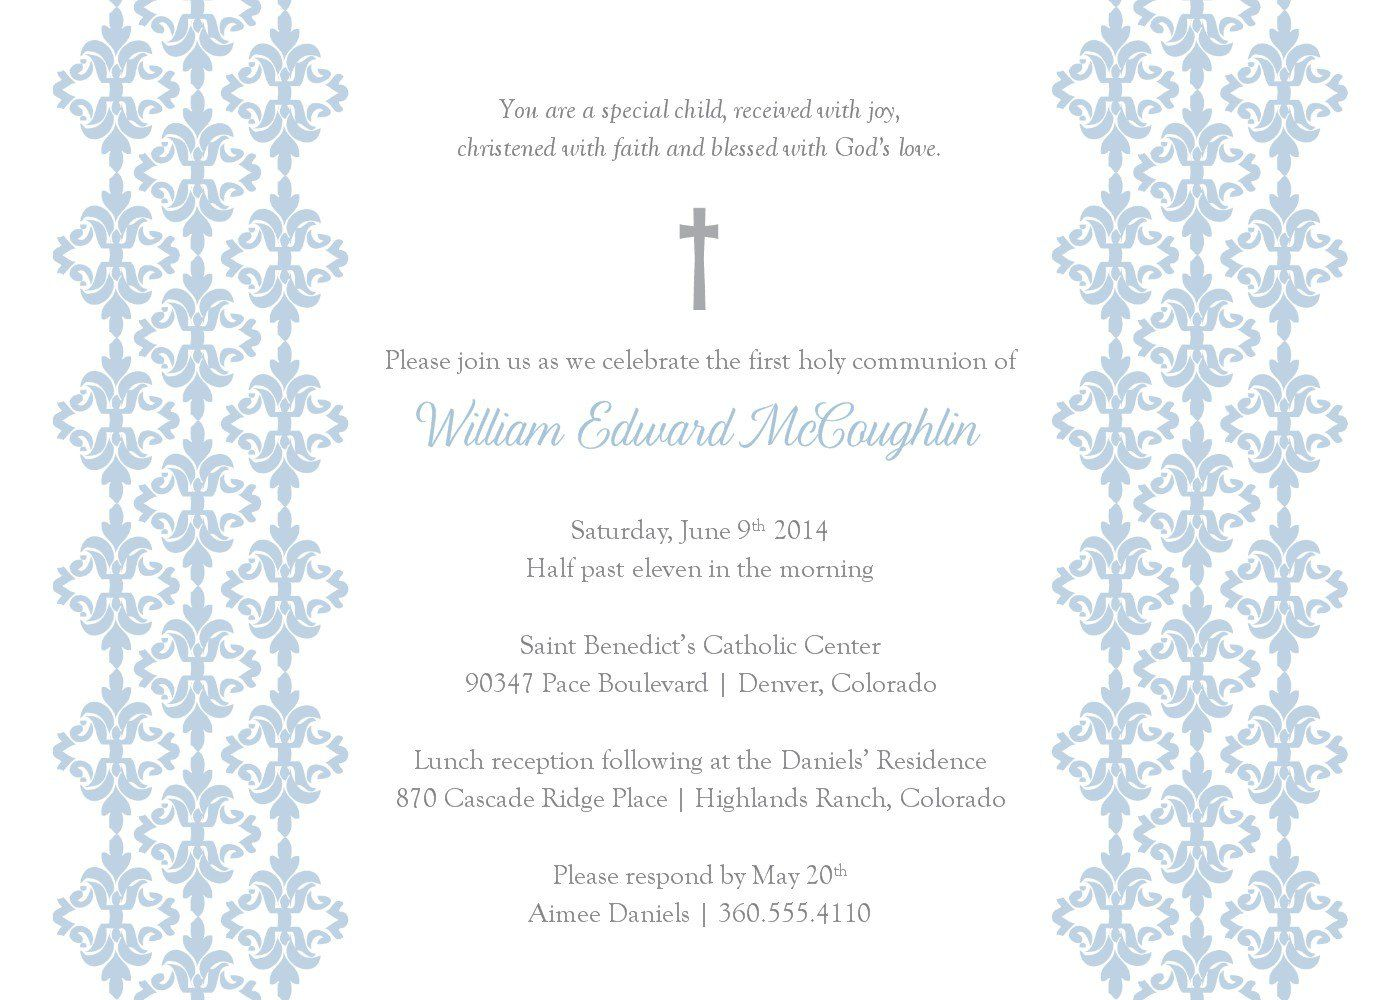 Baptism invitation cards templates free download baptism baptism invitation template new invitation cards pronofoot35fo Gallery